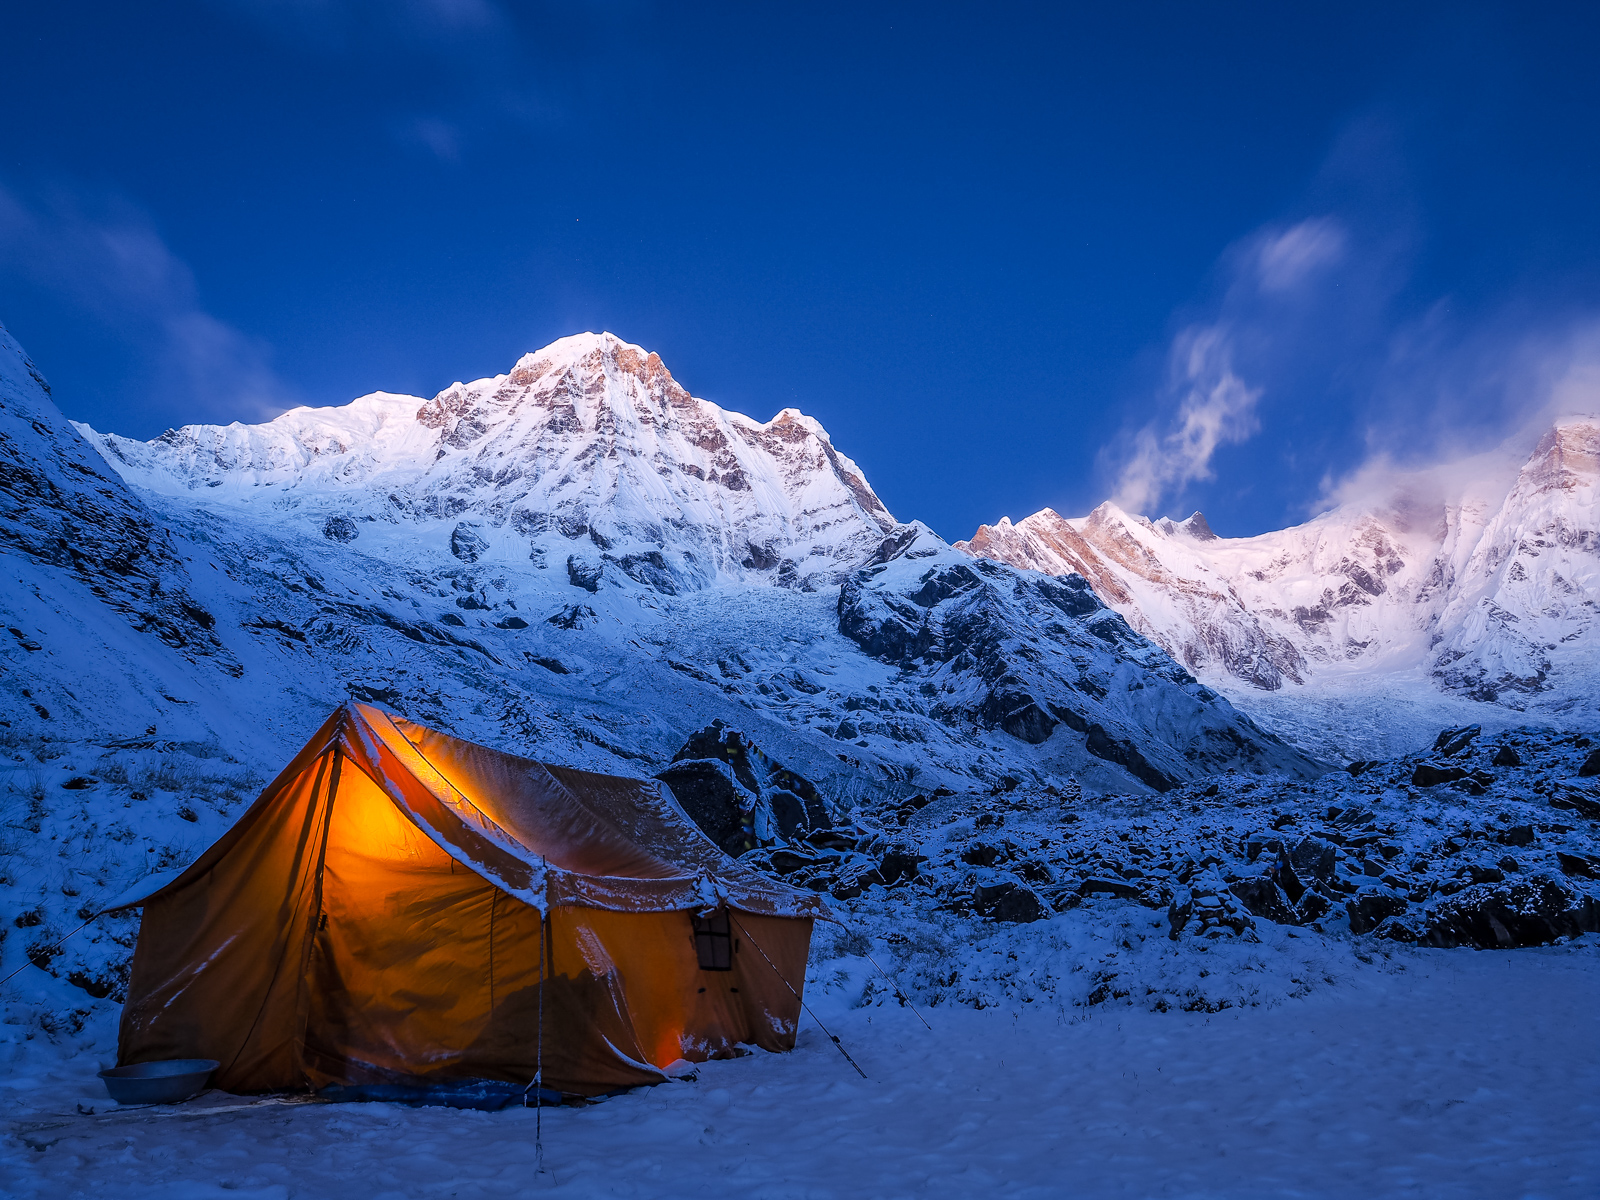 Tent in the mountains on a winter night with bright moon, Annapu